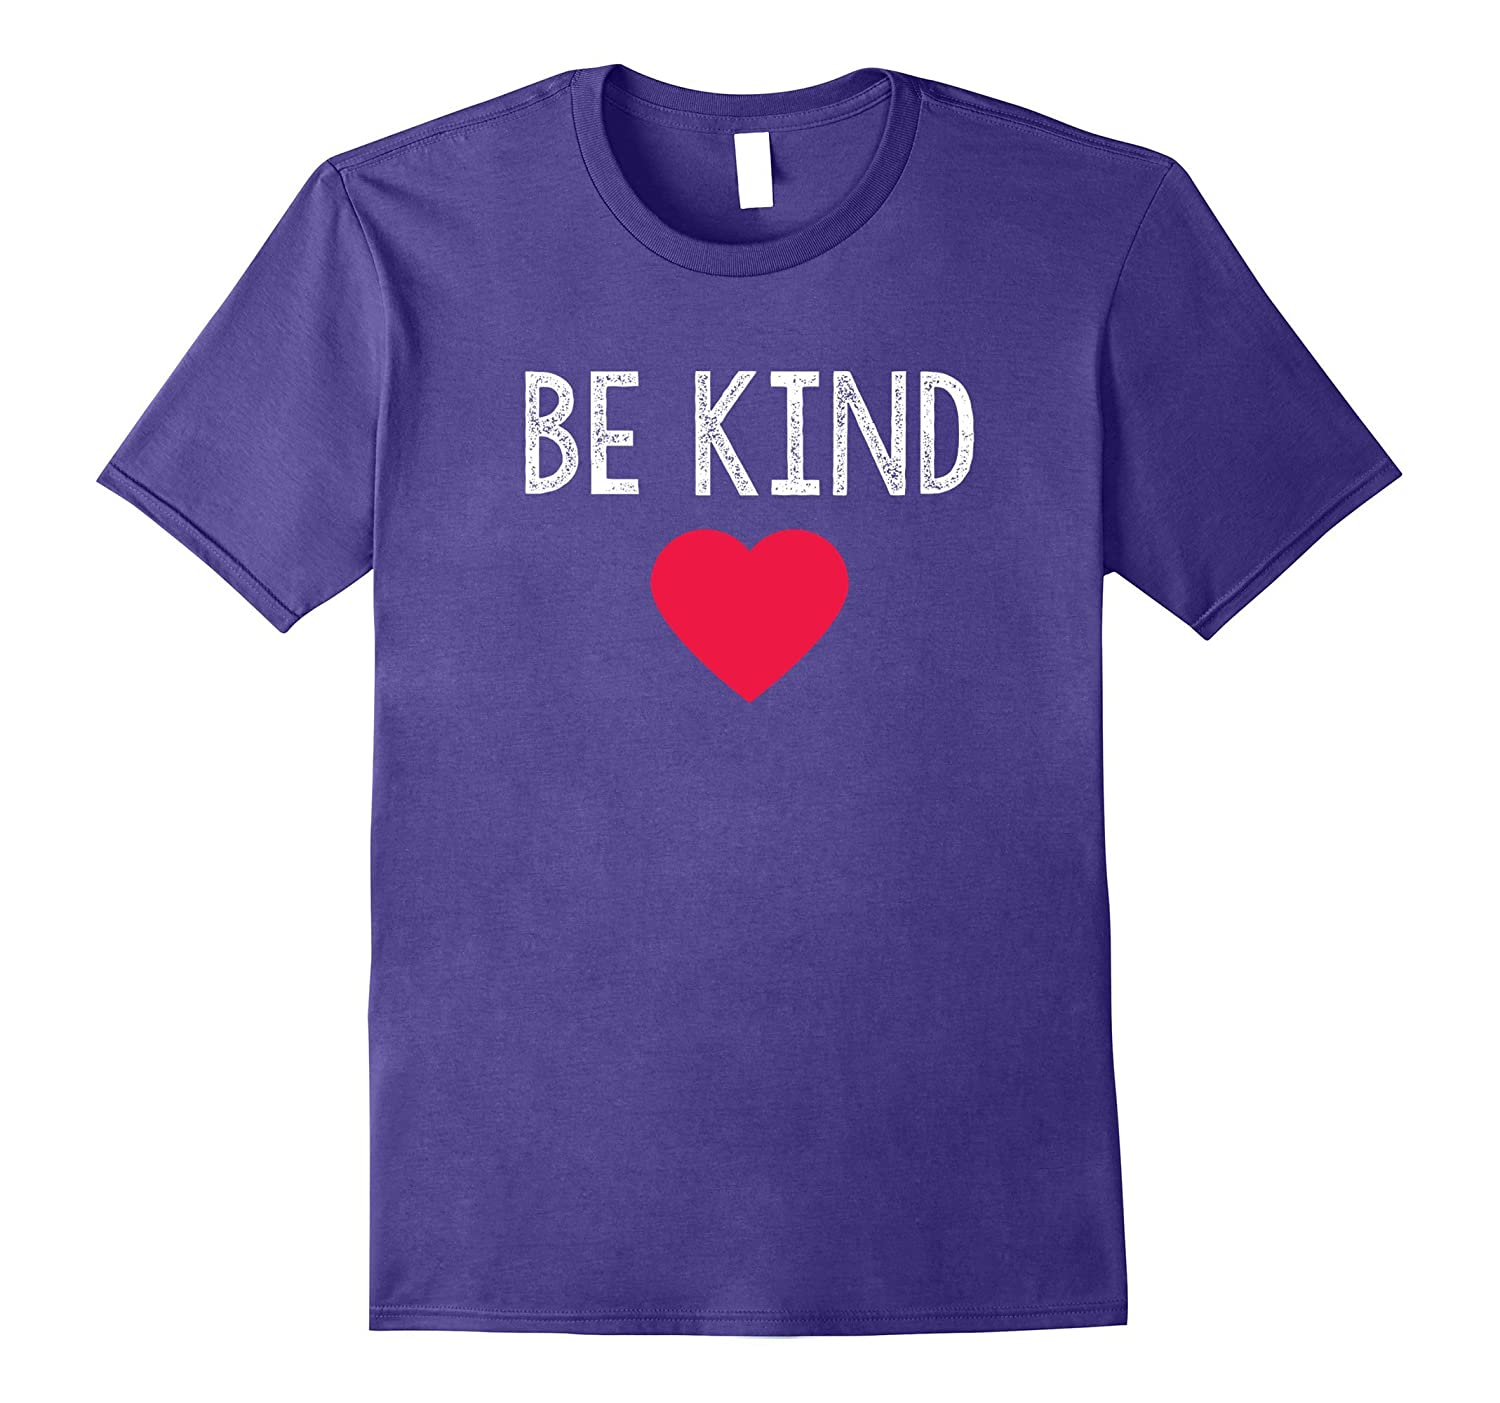 Be Kind T-Shirt - Positive Message of Love & Happiness-FL